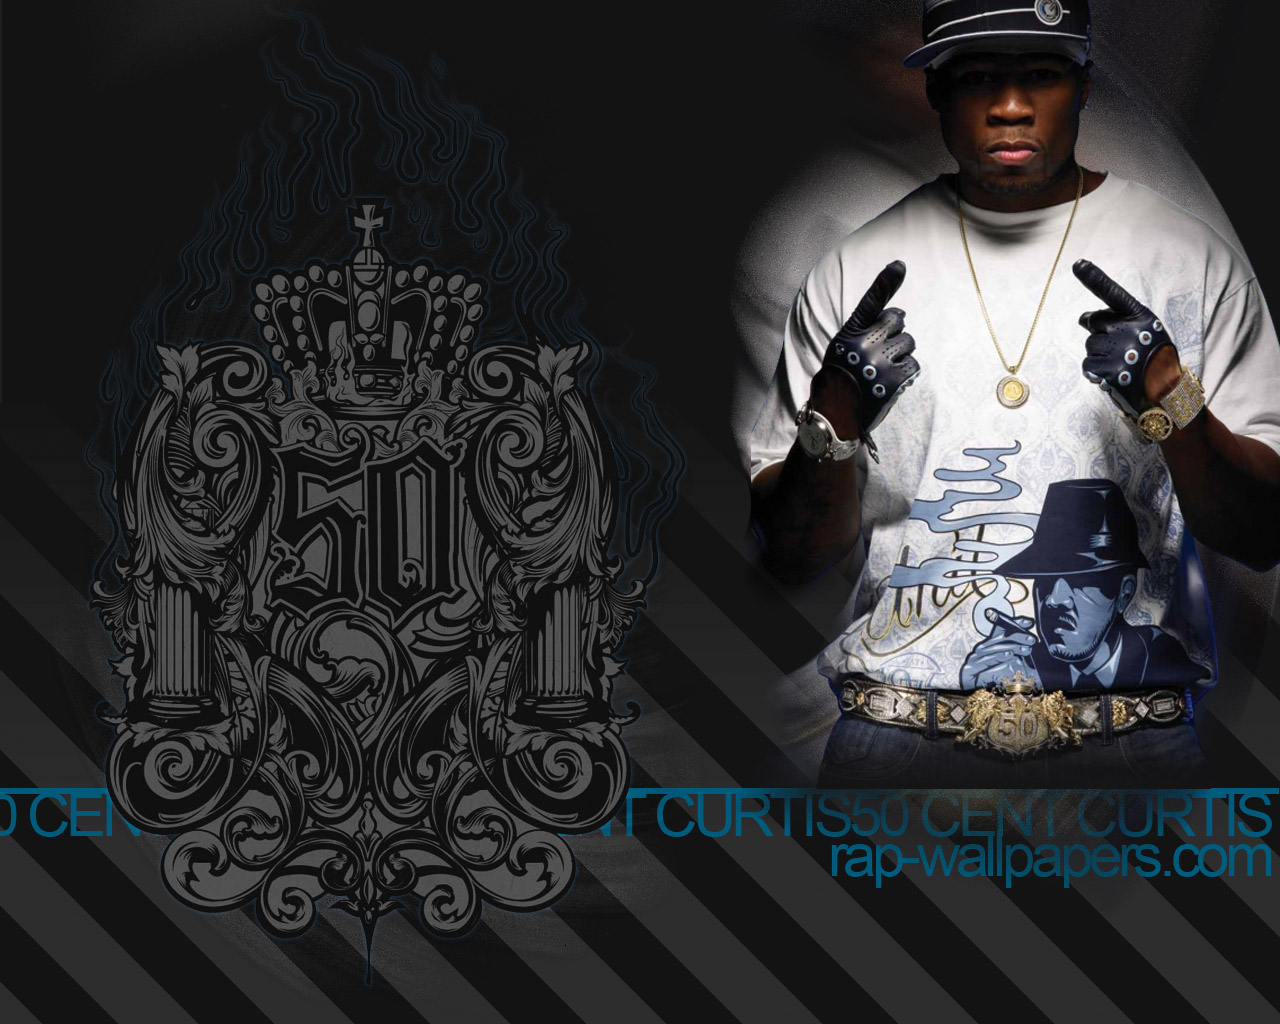 To save right click on the wallpaper and choose 'Save Picture As' 50 Cent